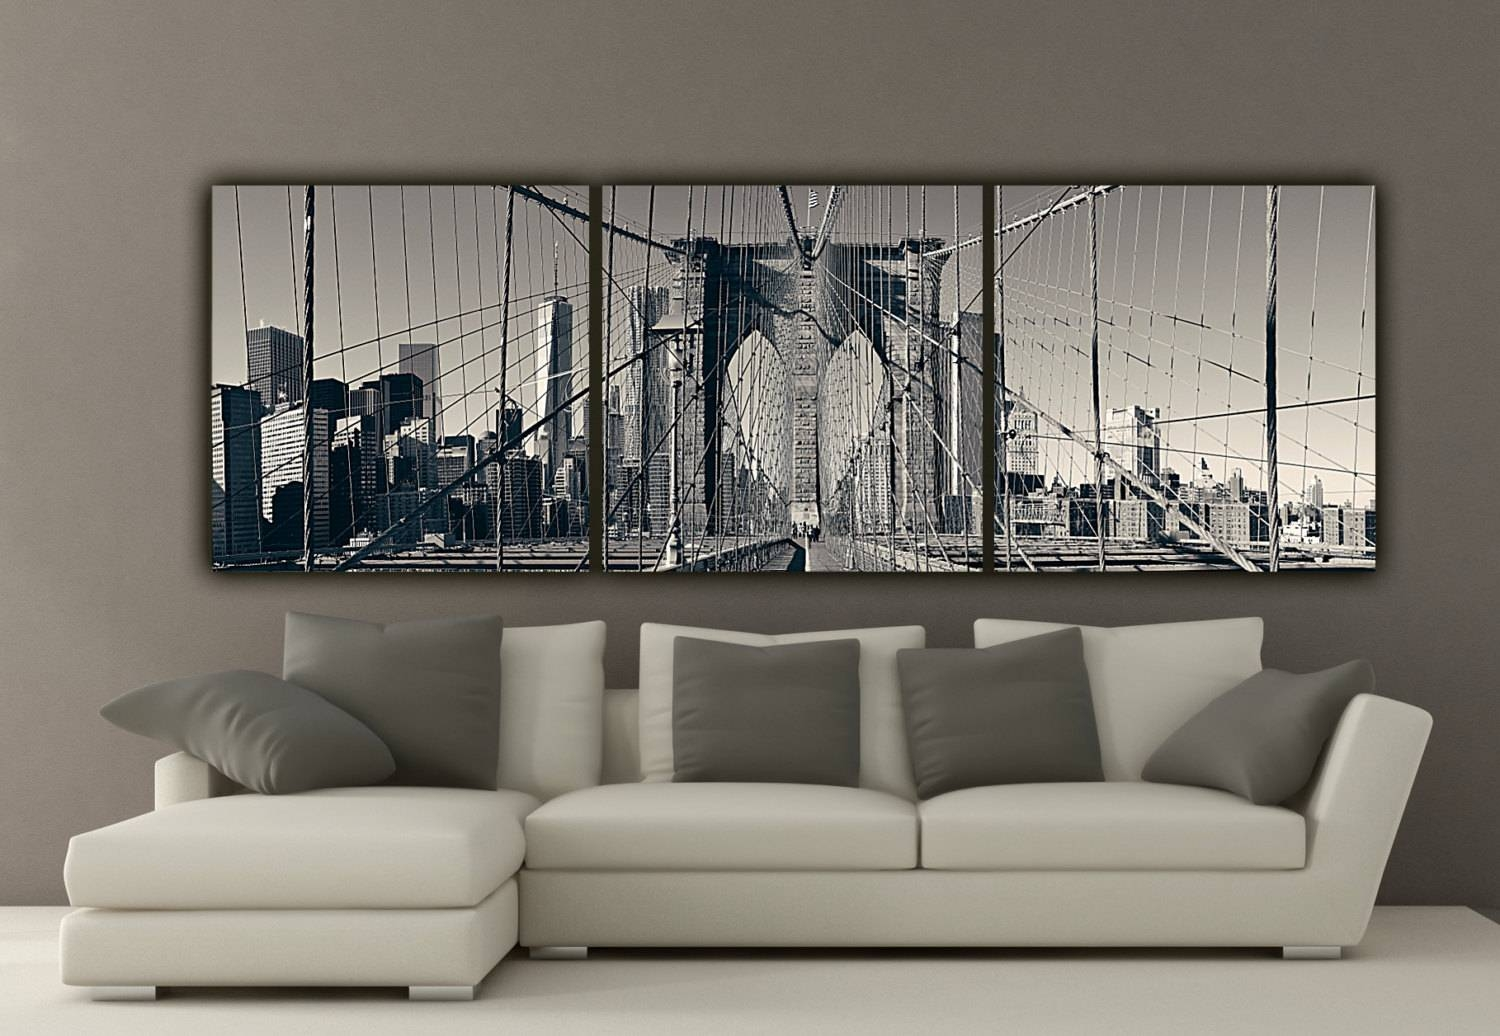 New York Brooklyn Bridge Canvas Wall Art Black And White New In Most Up To Date Black And White New York Canvas Wall Art (View 10 of 20)